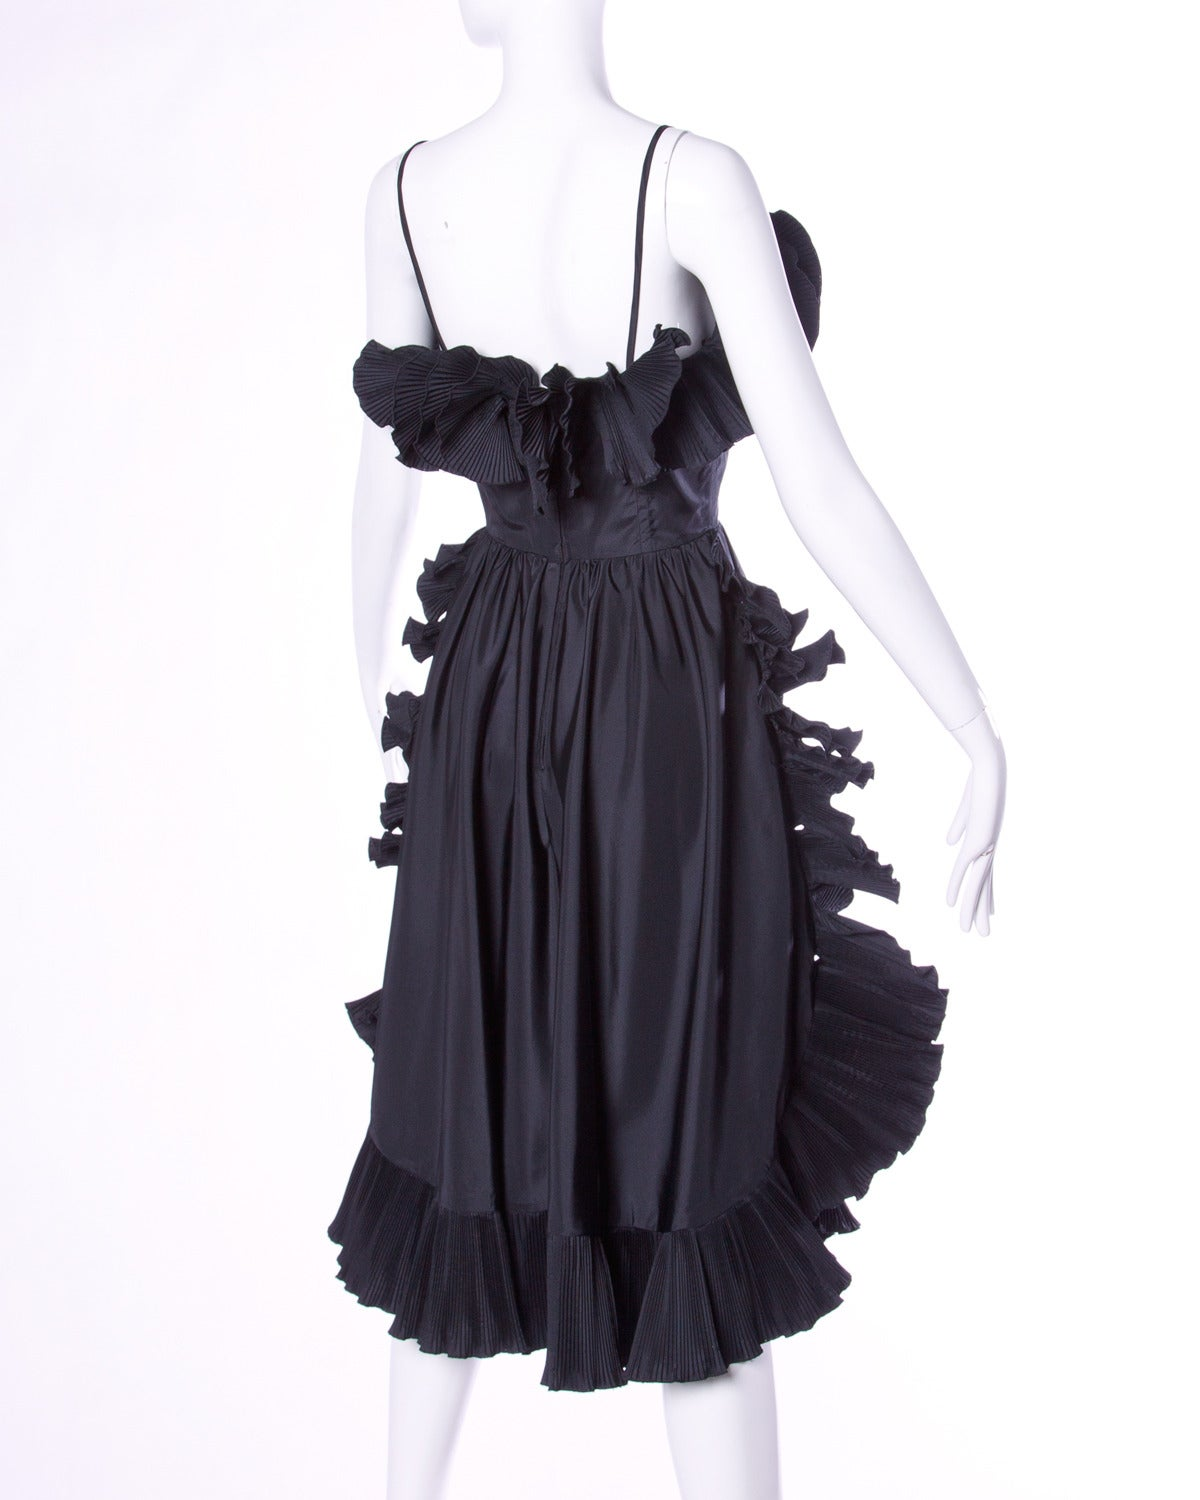 Unique avant garde origami pleated dress by Saks Fifth Avenue UK. Sculptural silhouette! 